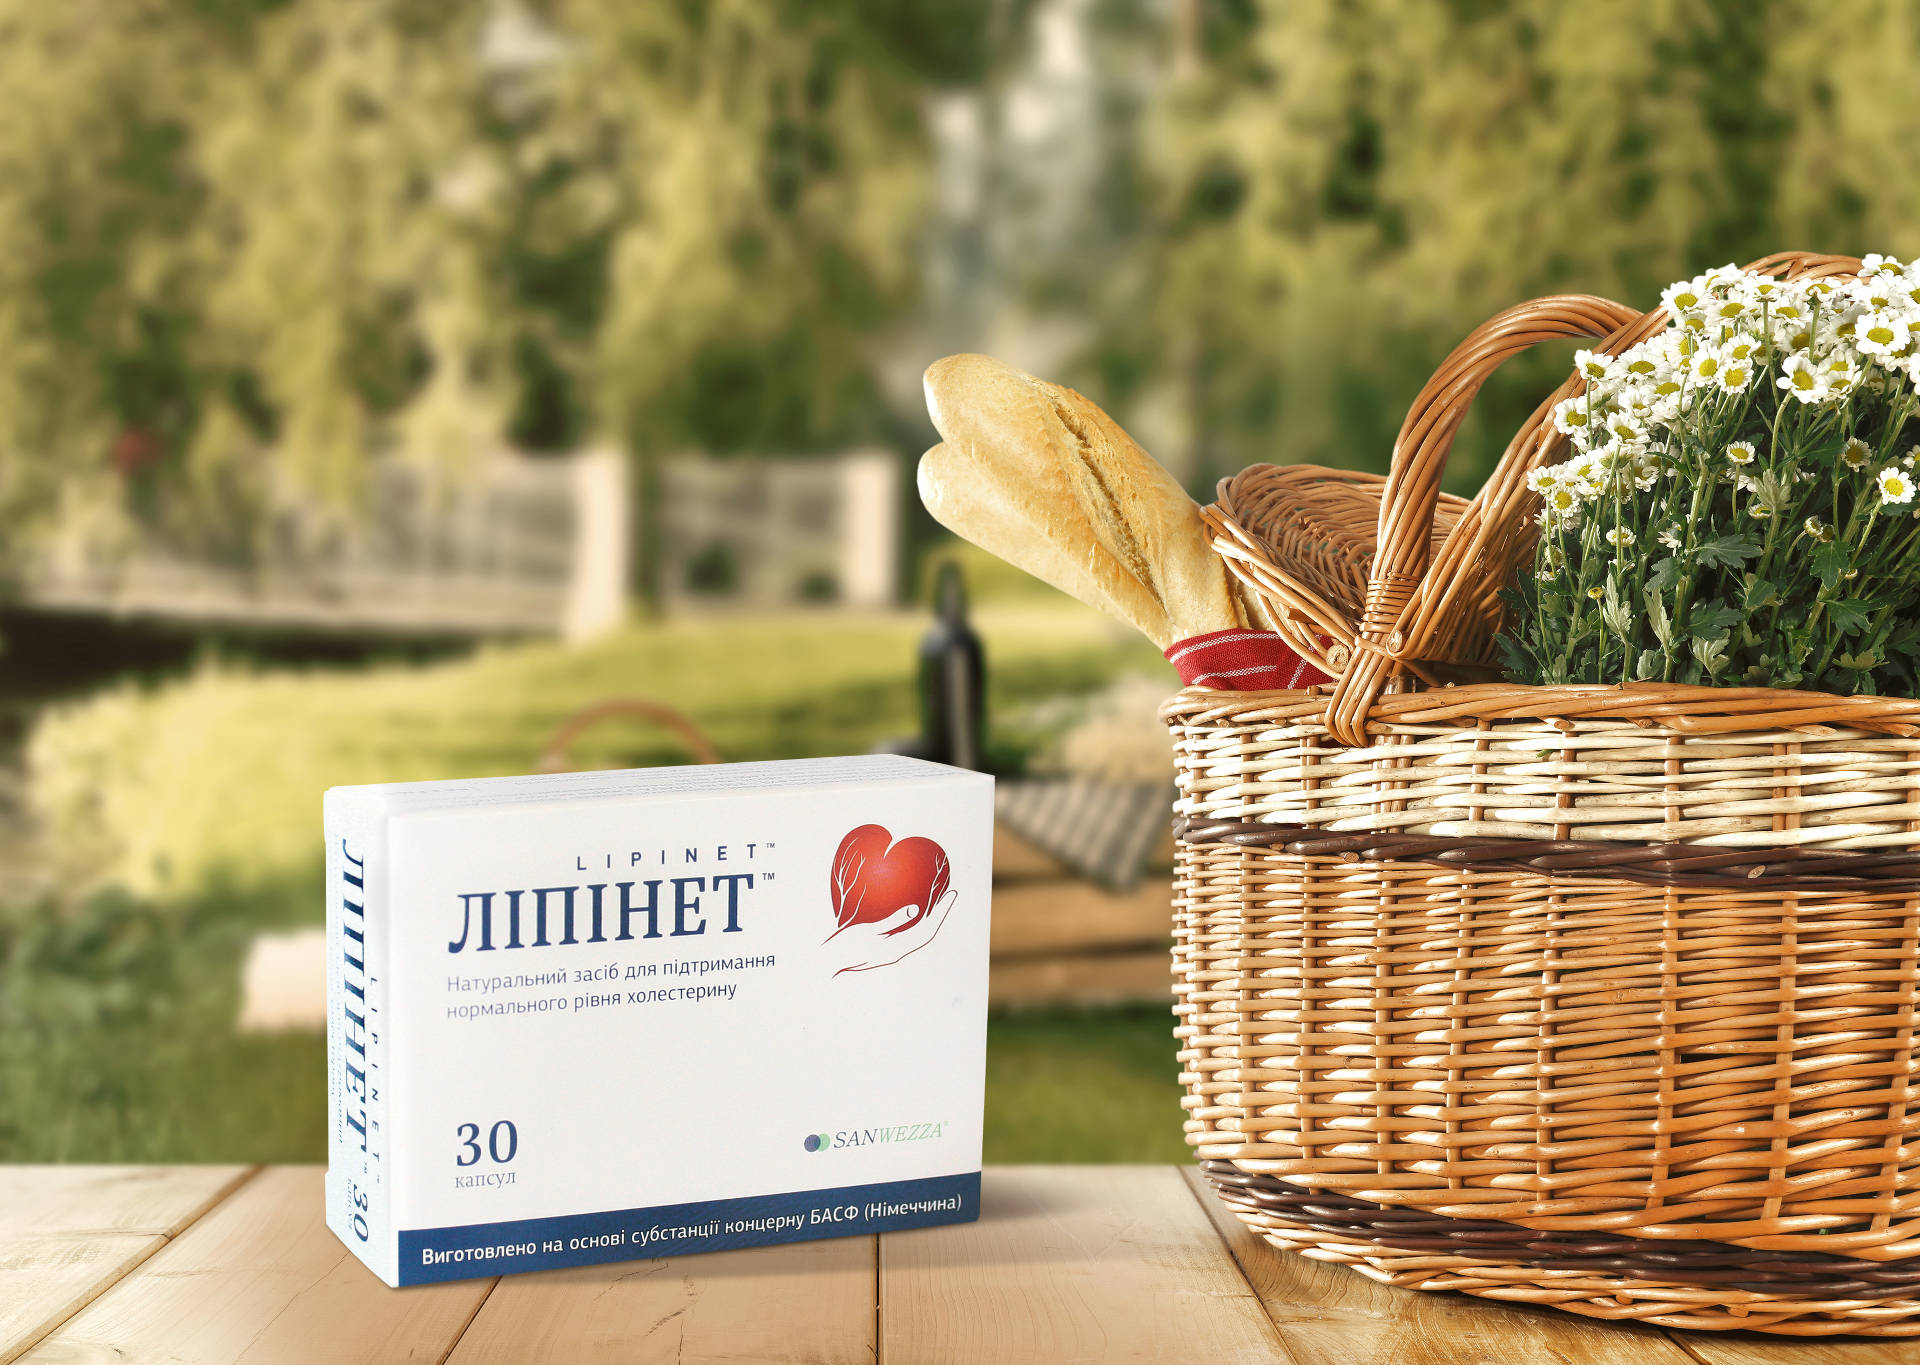 Дизайн упаковки медицинского препарата Липинет, Lipinet medication packaging design